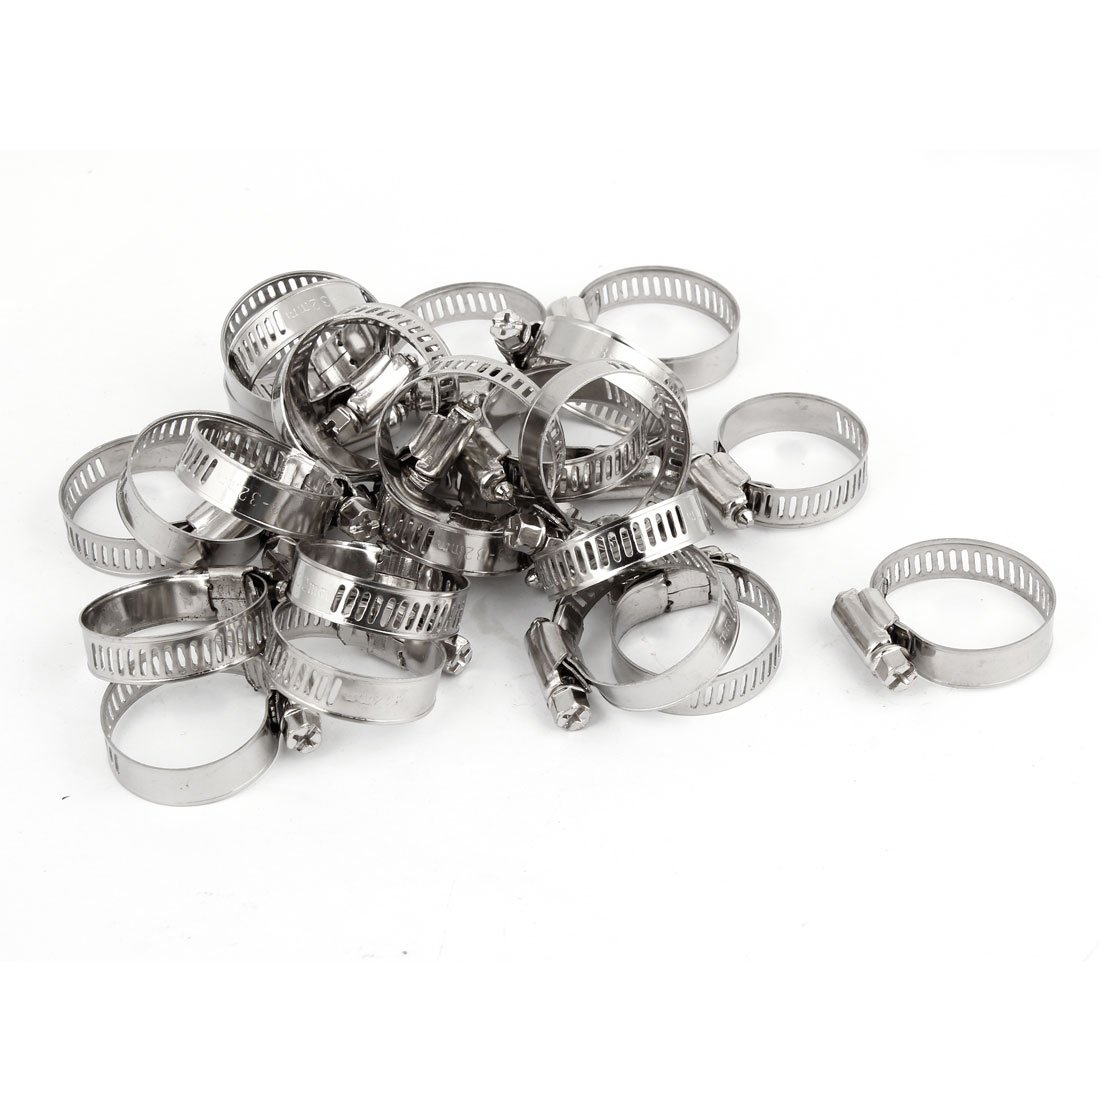 Uxcell Hardware Tool Worm Drive Hose Clamp (25 Piece), 18-32mm